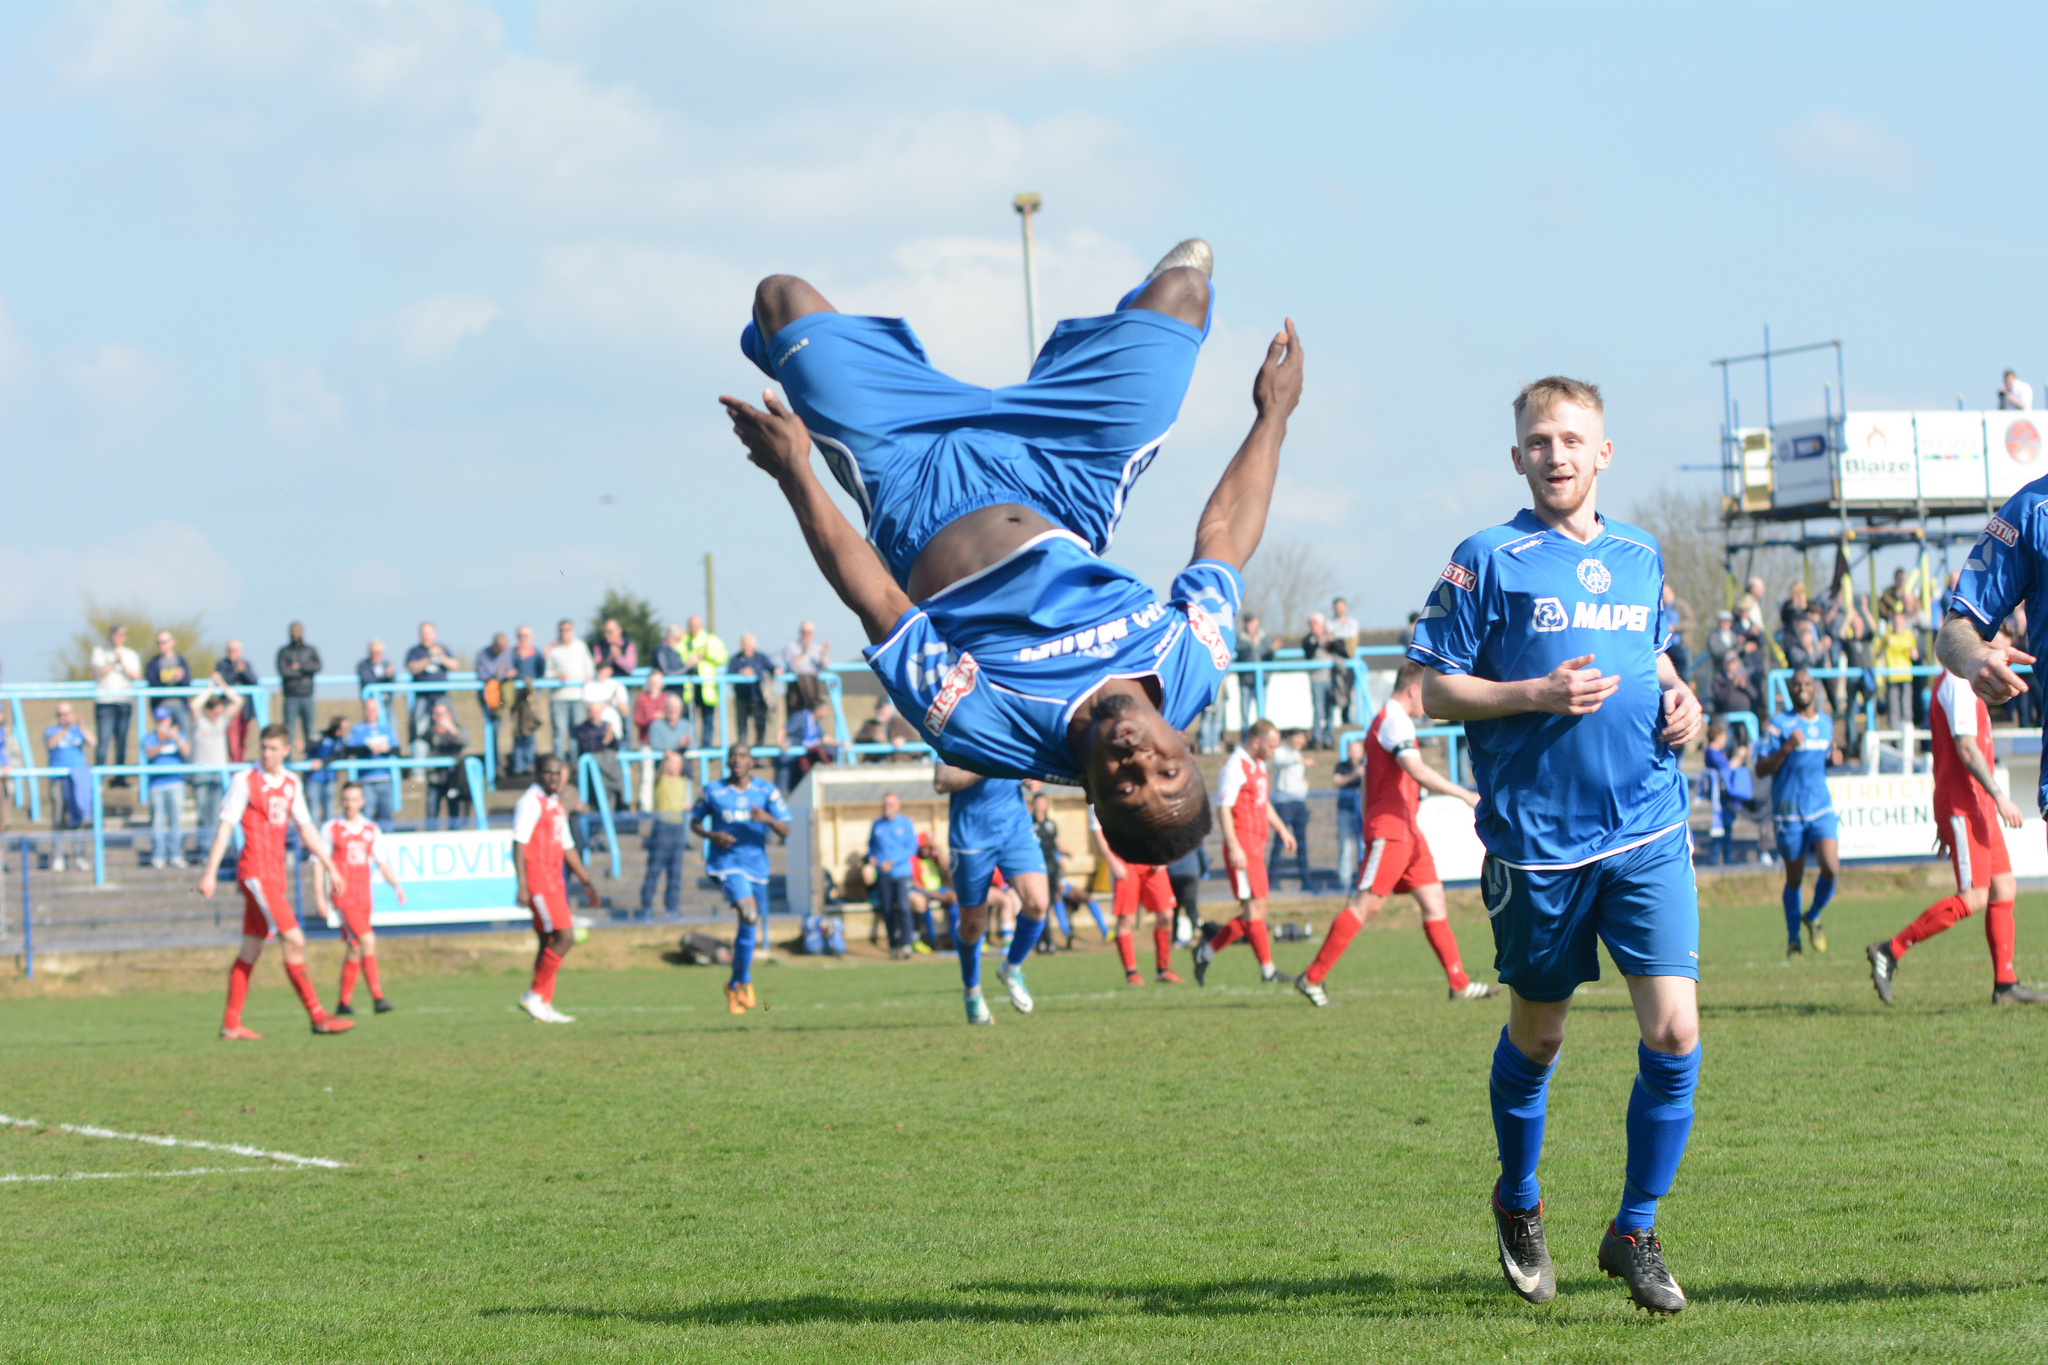 Roland Agbor celebrates his goal against Ashton in spectacular style. Photo courtesy of Halesowen Town